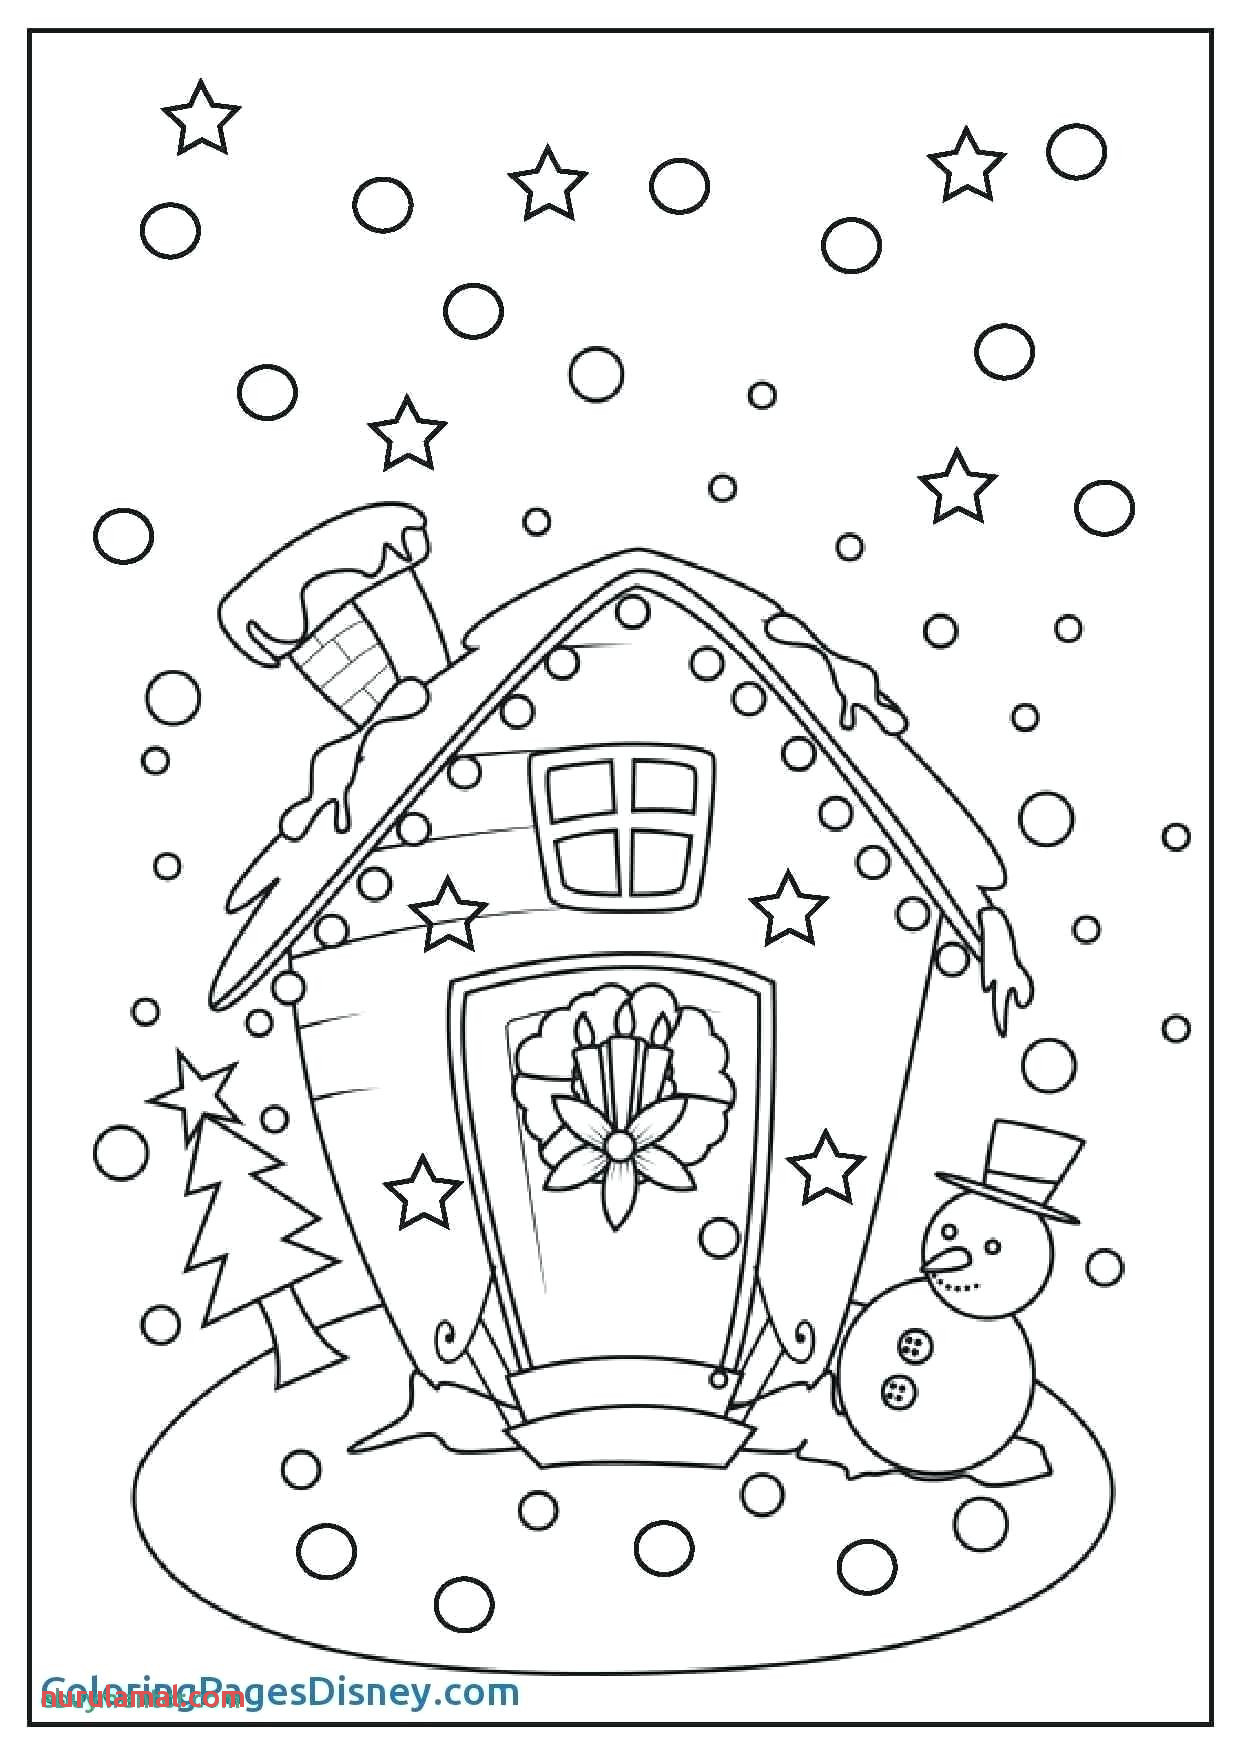 Coloring Book 34 Fraction Coloring Worksheets Ideas